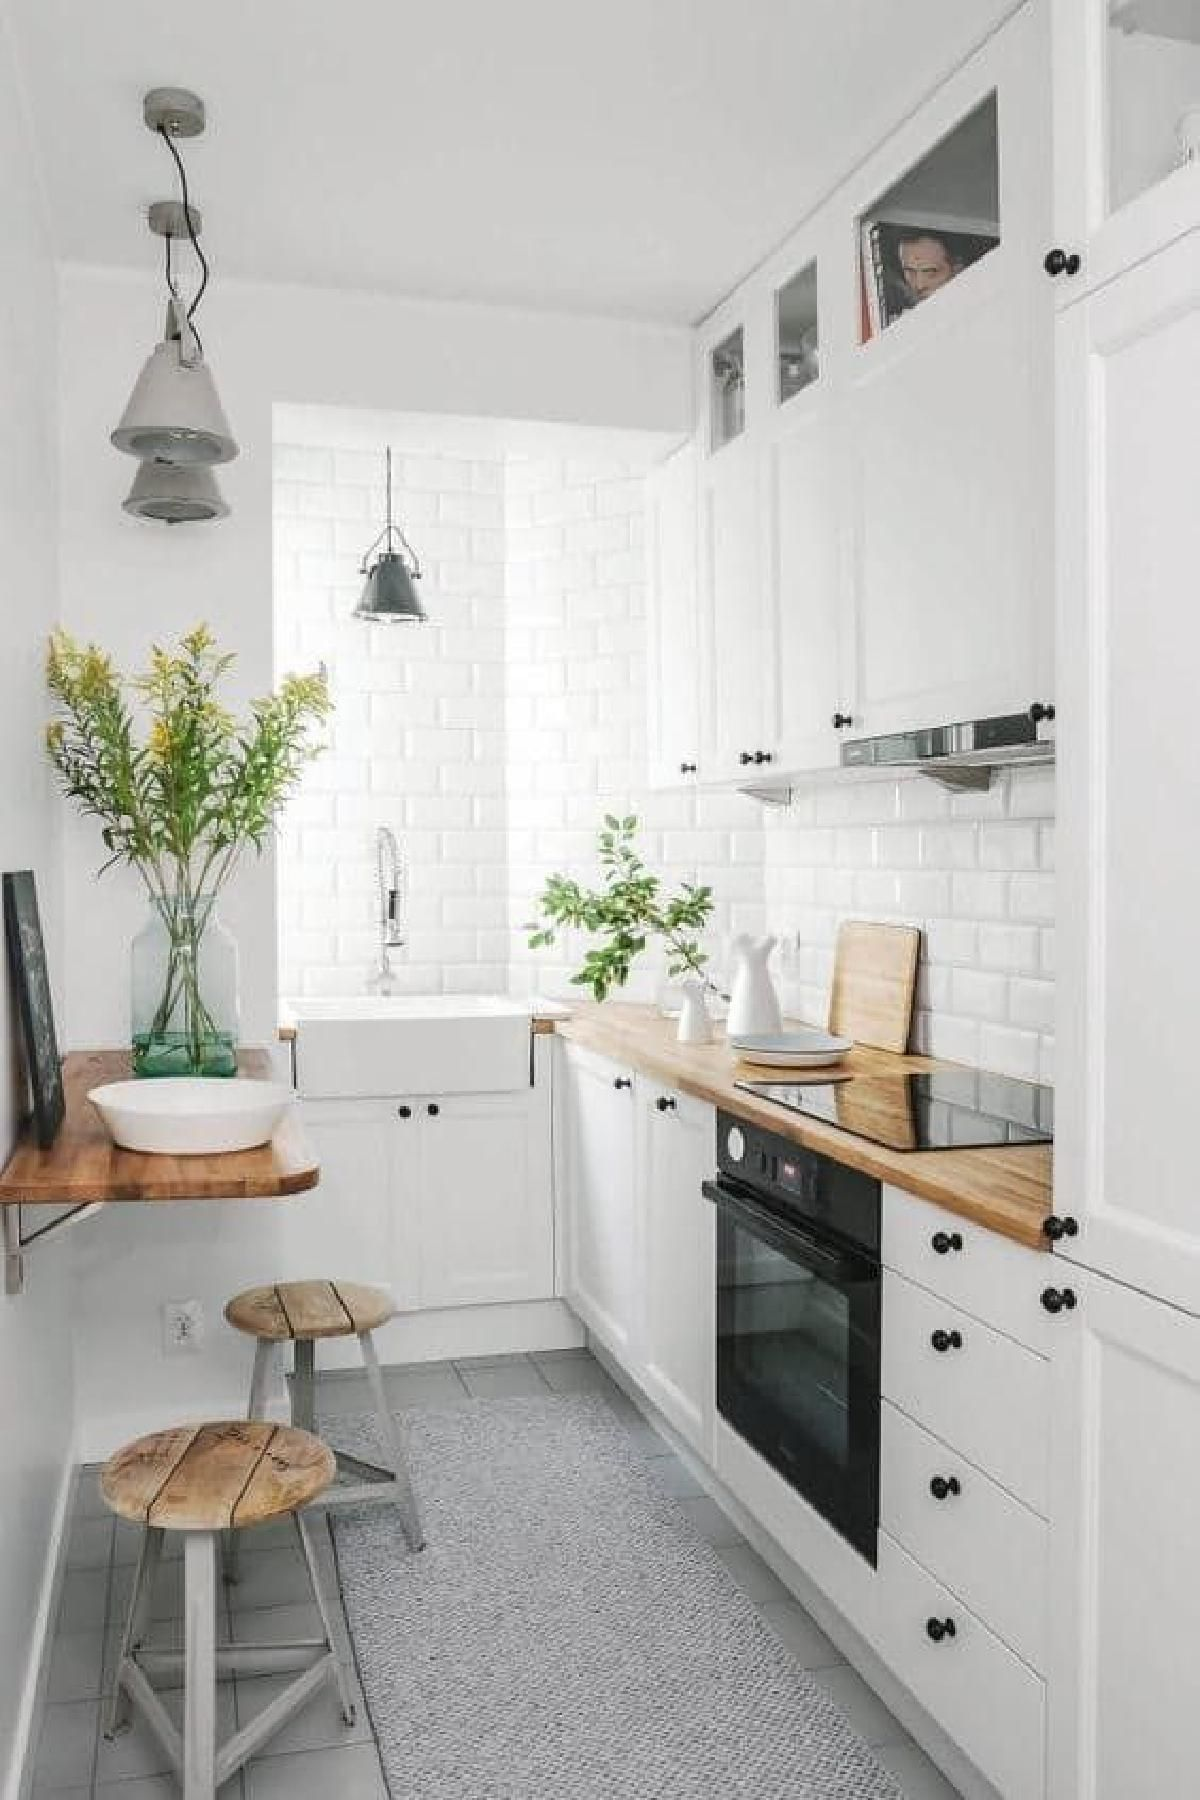 Find Other Ideas Kitchen Countertops Remodeling On A Budget Small Kitchen Remodeling Layout I Kitchen Design Small Kitchen Remodel Small Galley Kitchen Design